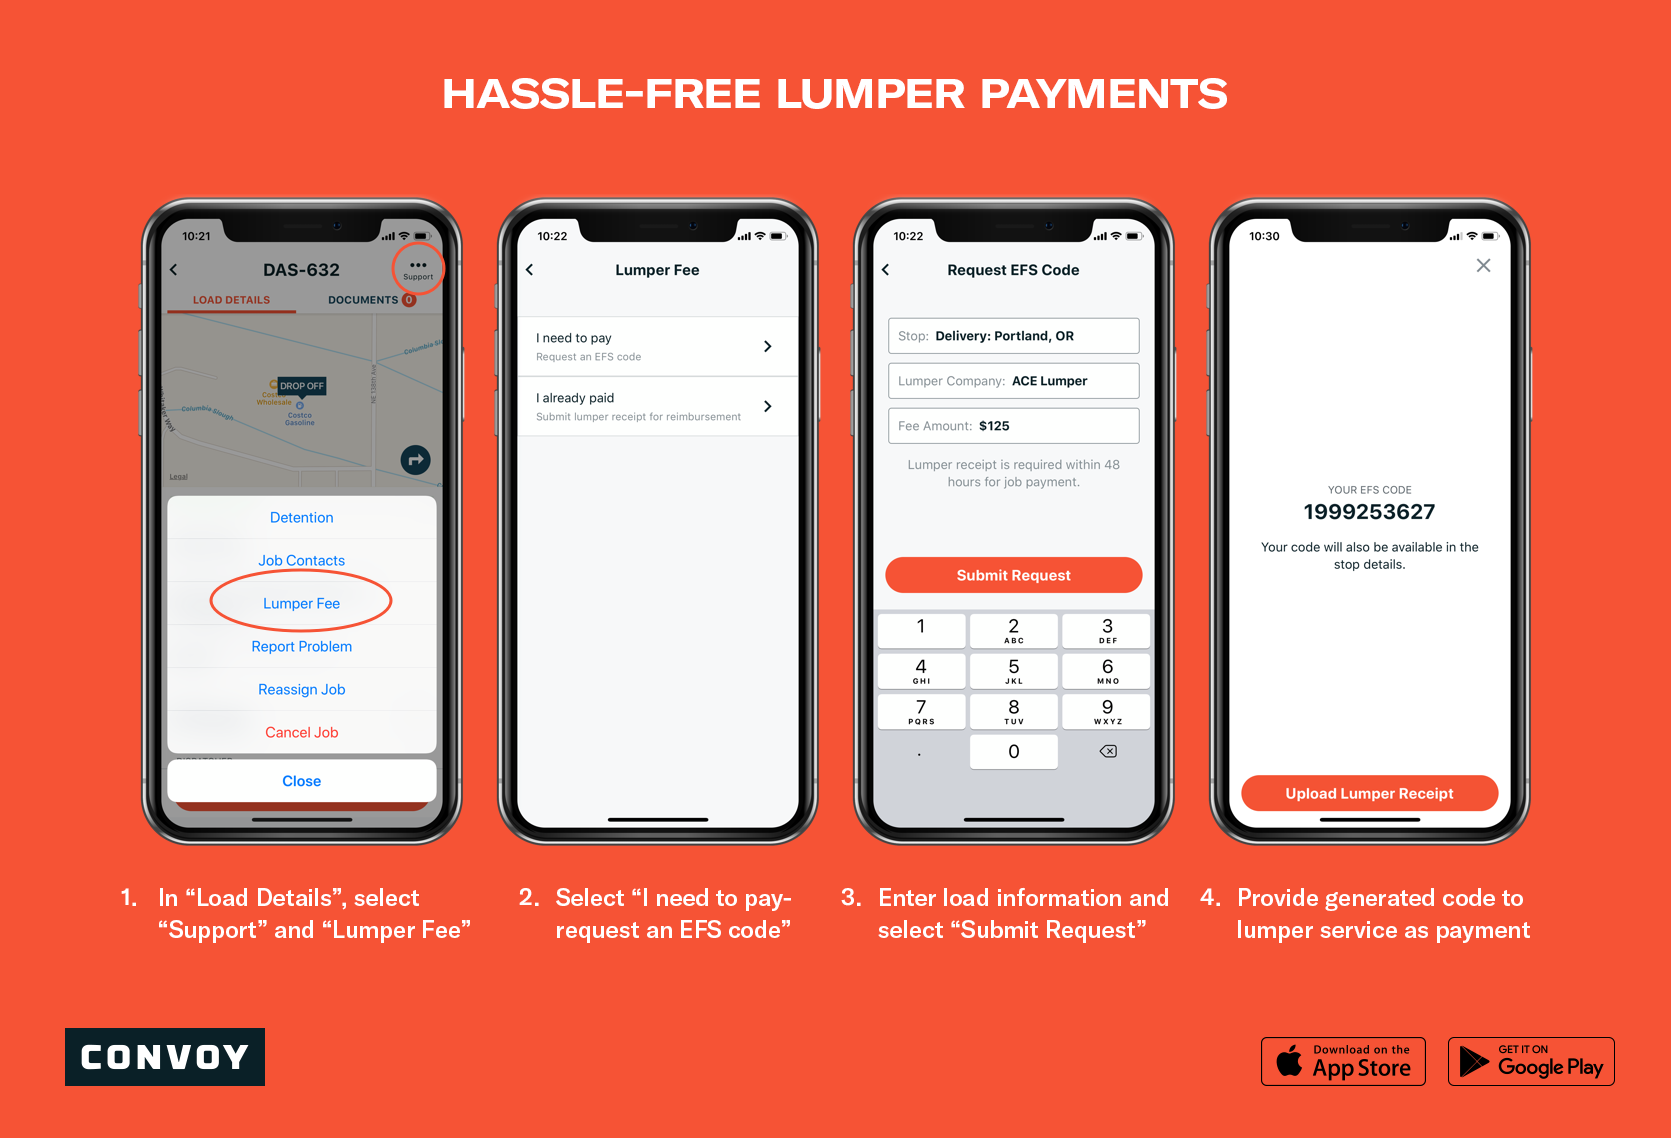 HF_Lumper_Payments_Process.png